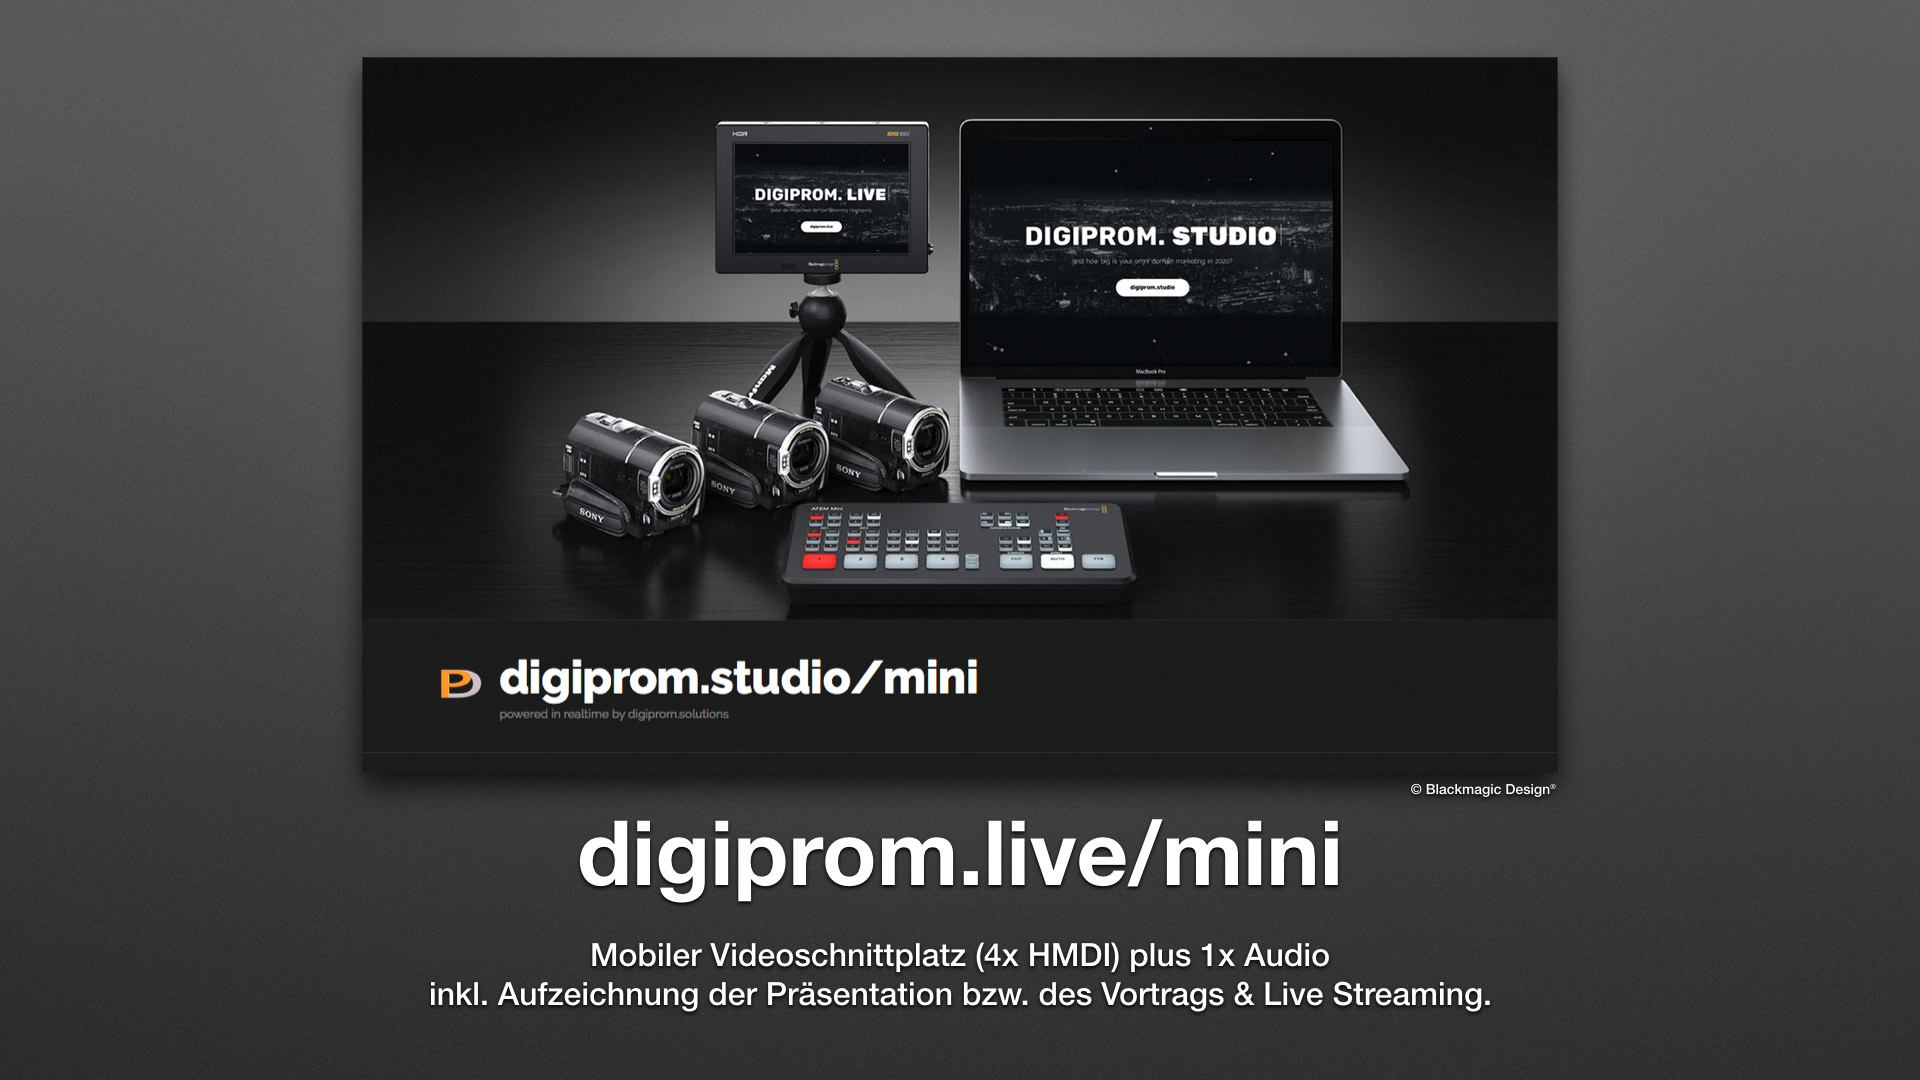 digiprom.social